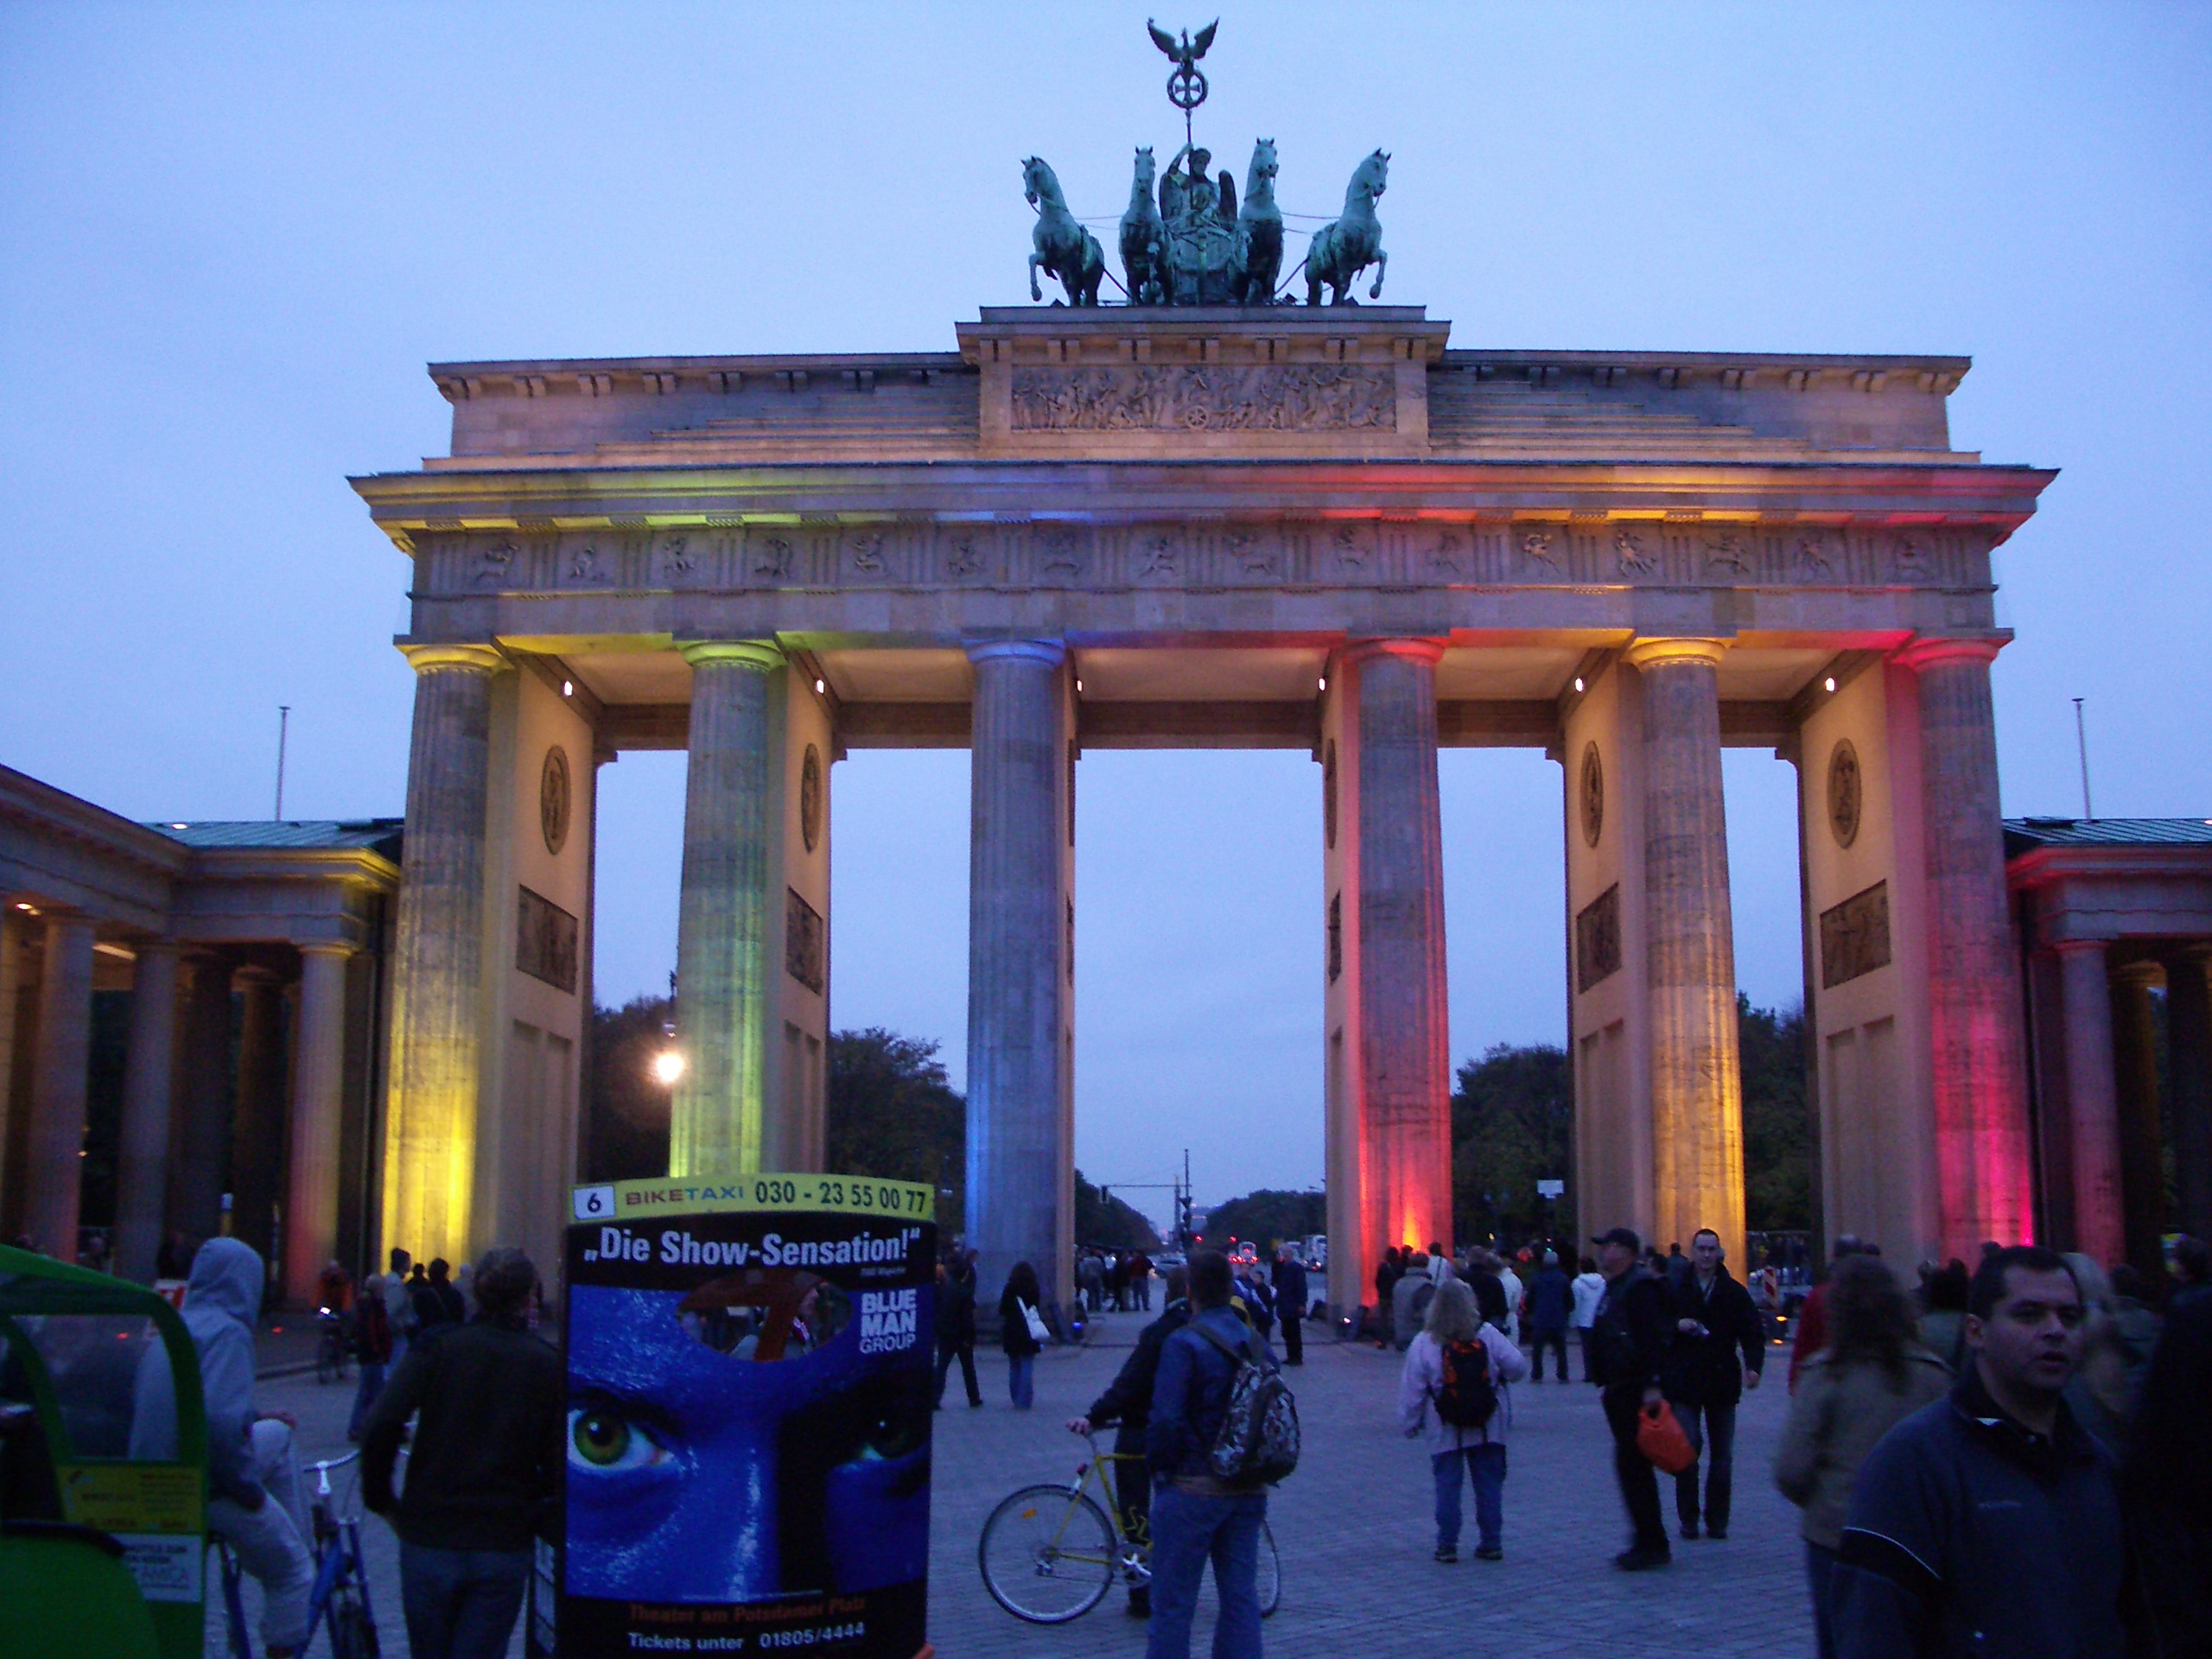 berlin wallpaper hd